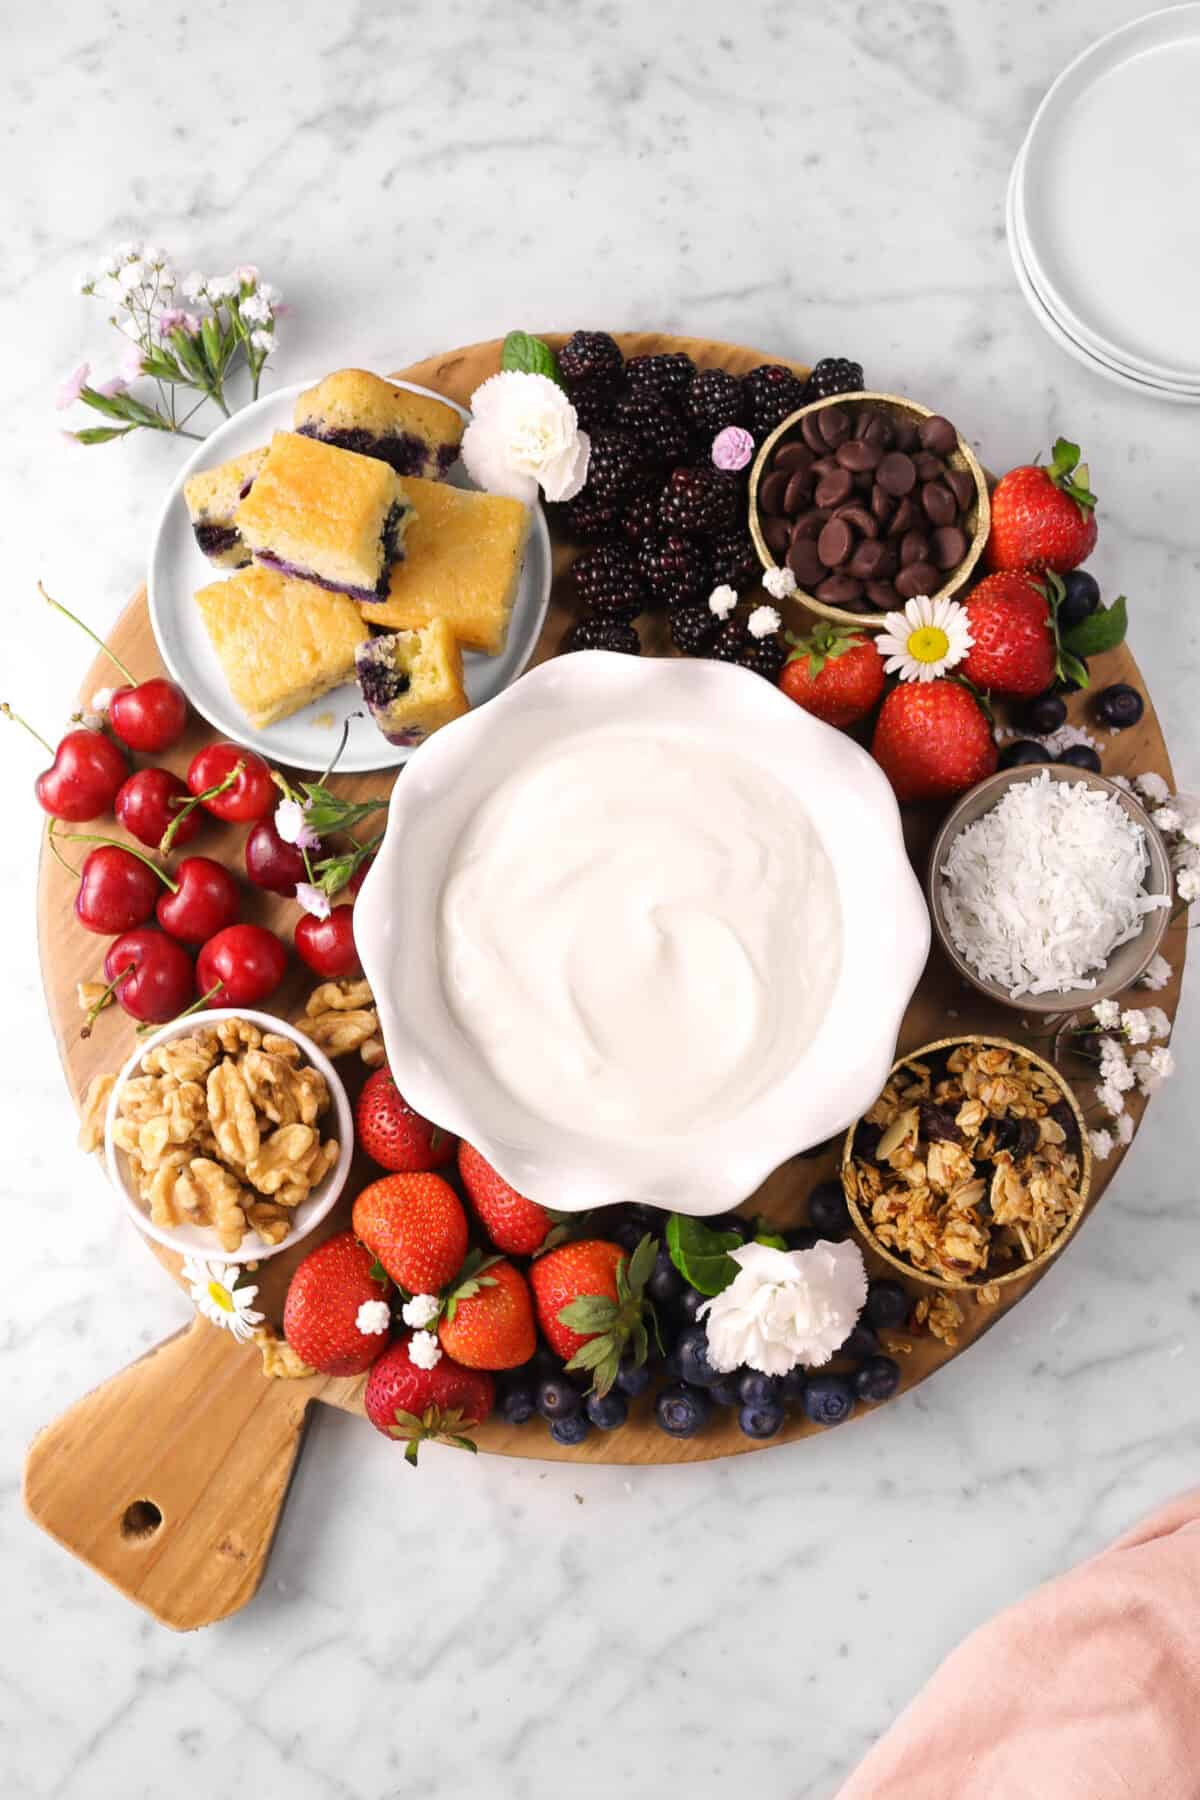 a wood board with fruits, yogurt, cake, flowers, chocolate, granola, and nuts on marble counter with plates and a pink napkin